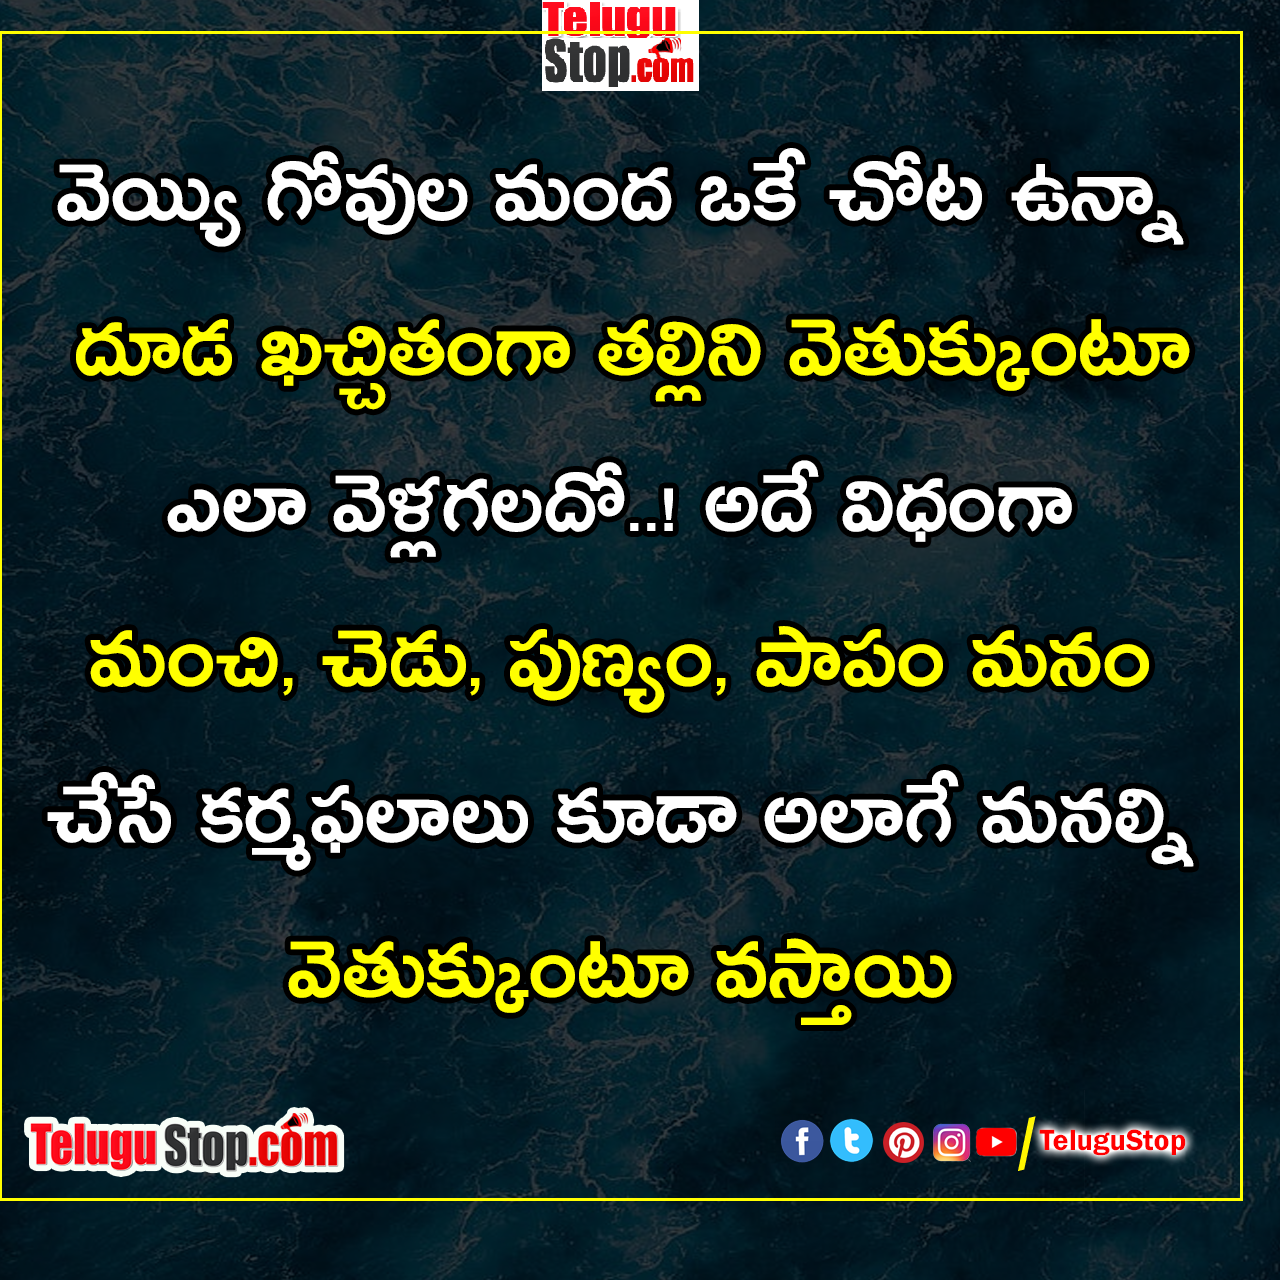 Telugu Do Not Watch Them Tails As They Grow Inspirational Quotes, Dont Criticize Others Inspiriational Quotes, Remember The Last Thing Left In Life Inspirational Quotes, What We Do Is Good For Us Inspiriational Quotes-Telugu Daily Quotes - Inspirational/Motivational/Love/Friendship/Good Morning Quote